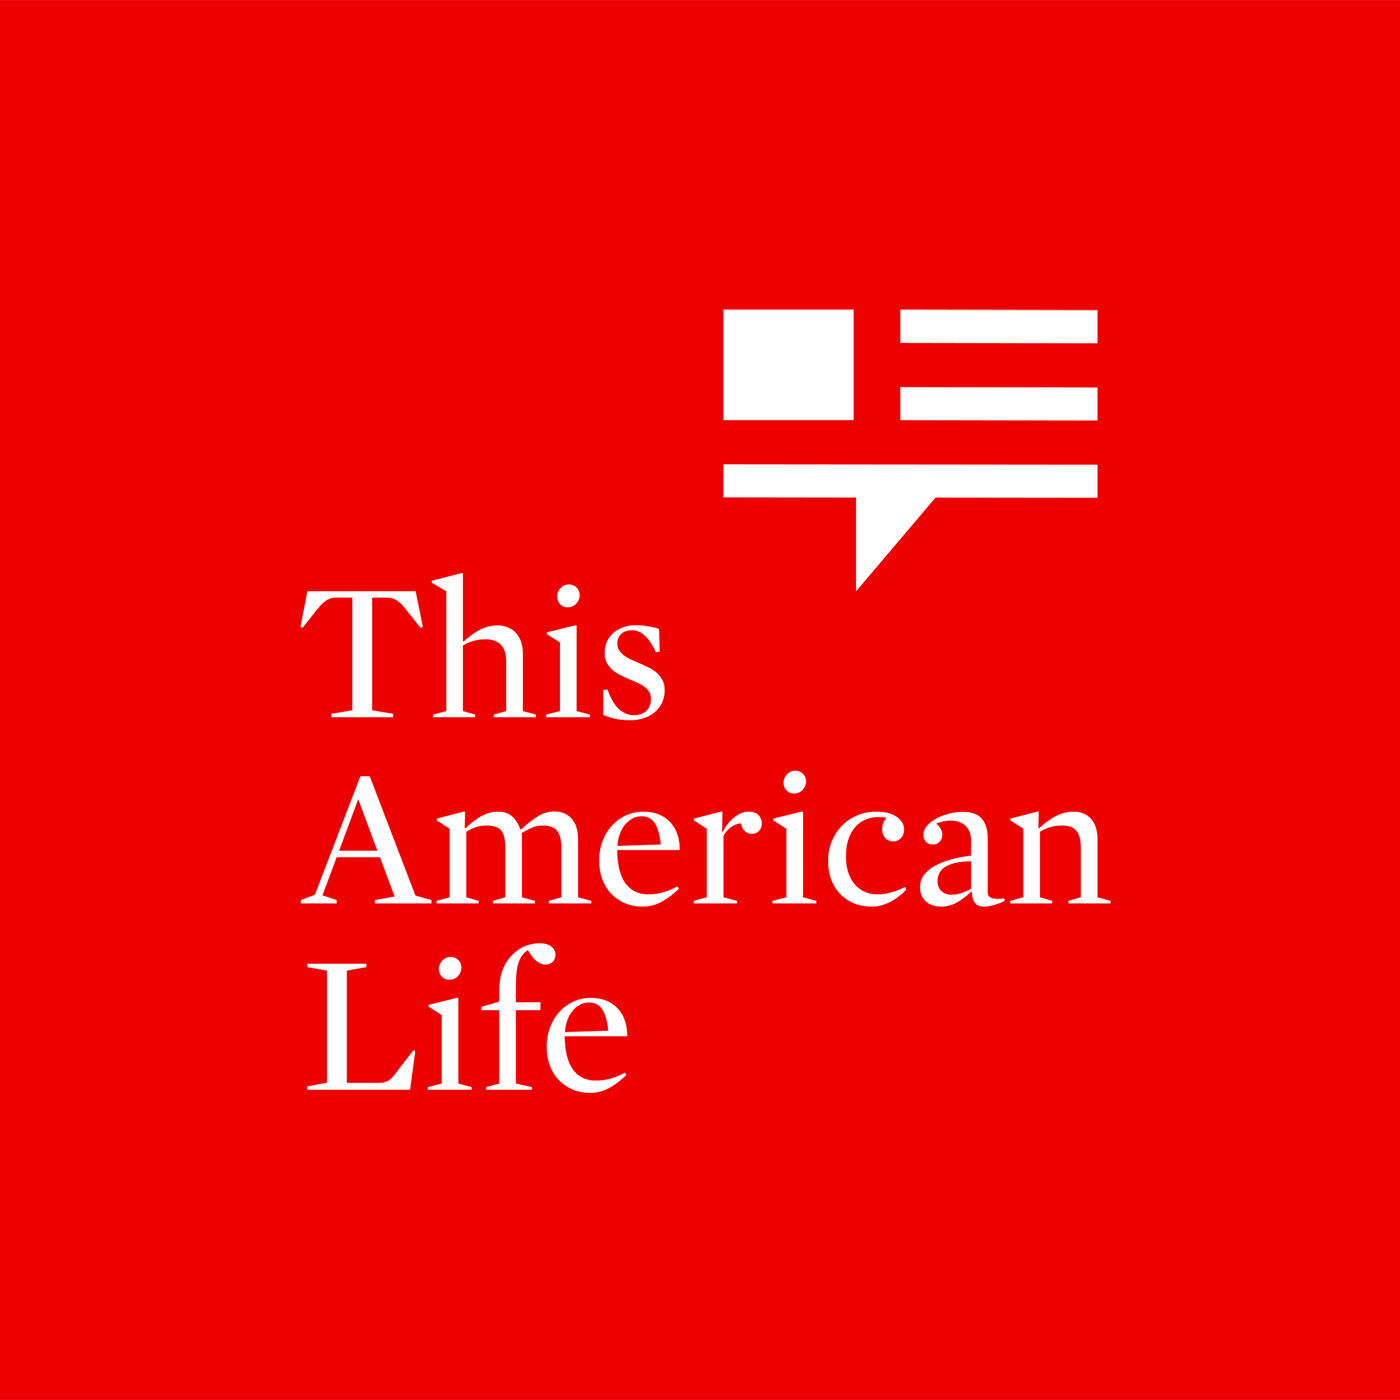 THIS AMERICAN LIFE - Another OG NPR podcast. It's a weekly public radio show hosted by Ira Glass. Each week the show picks a theme and brings together different stories on that theme. This honestly is such a random show, but it's  SO good. I love the stories of every day people that the show features. Not only that, they do some weird stuff like broadcast for 24 hours at an all night restaurant or put together their own band from musician's classified ads. I know I'm not doing that great of a job describing this but it's really hard to put into words what this podcast does. So just listen and see if you like it.